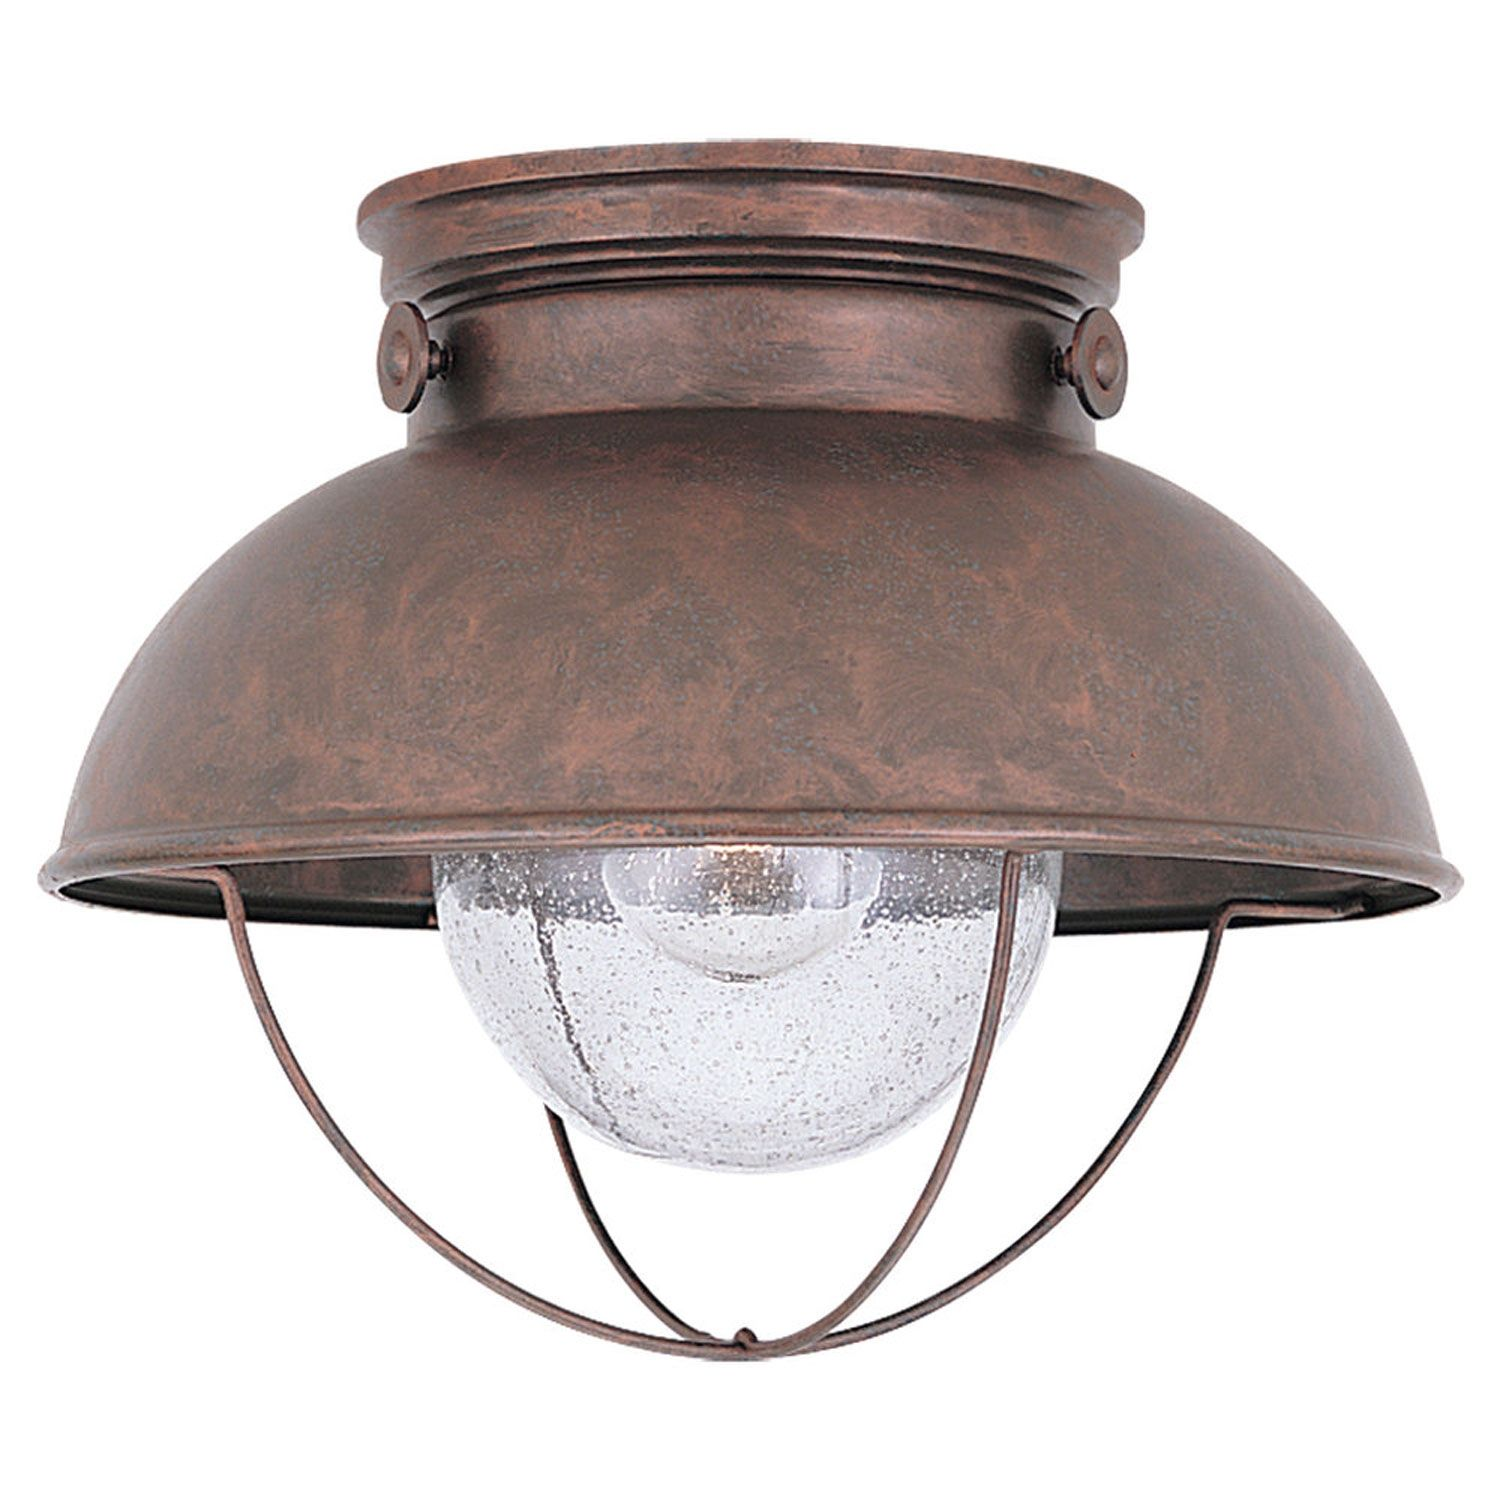 Ceiling mount exterior light fixtures http ceiling mount exterior light fixtures aloadofball